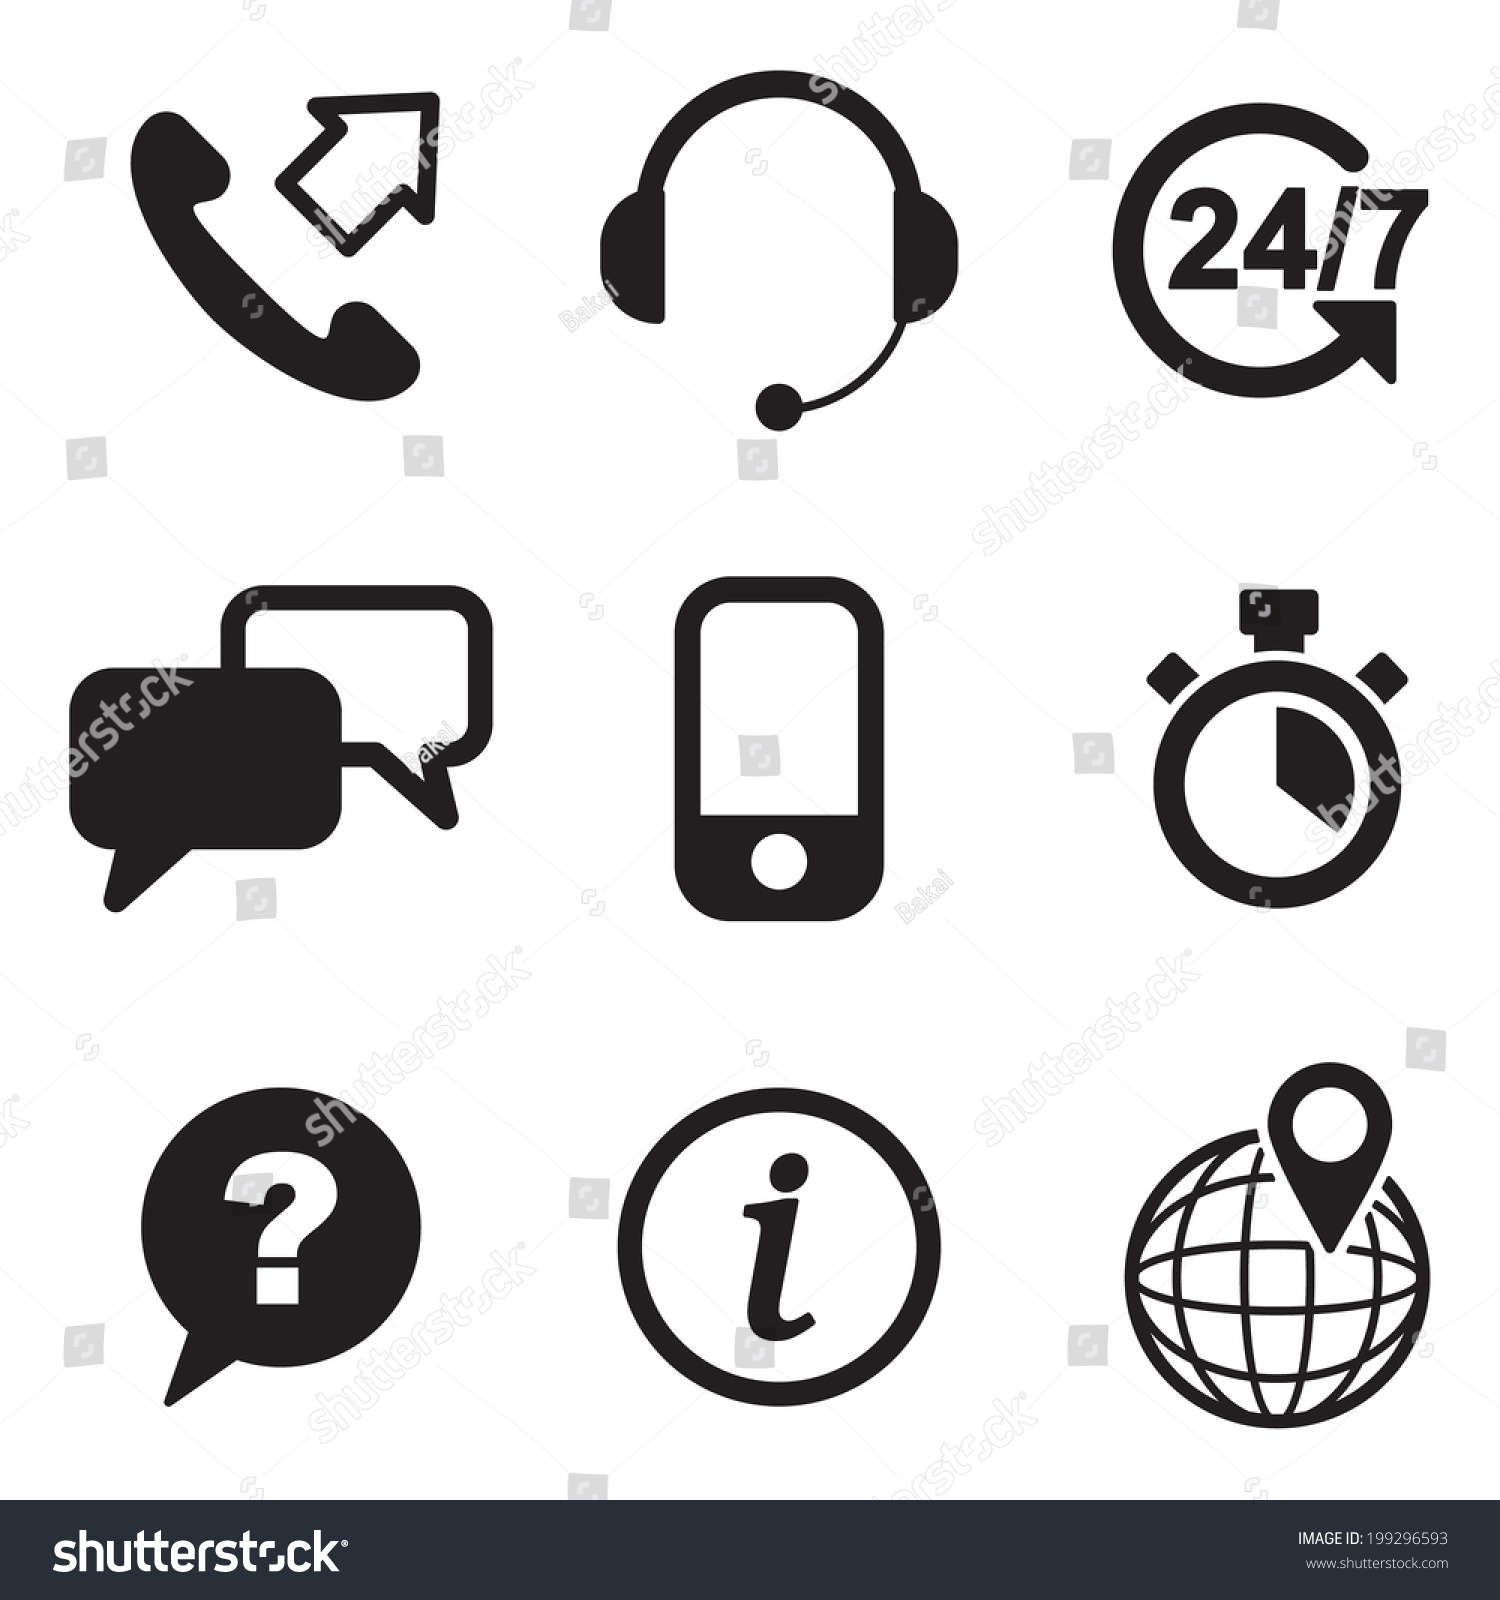 Customer Service Icons Stock Vector 199296593 - Shutterstock